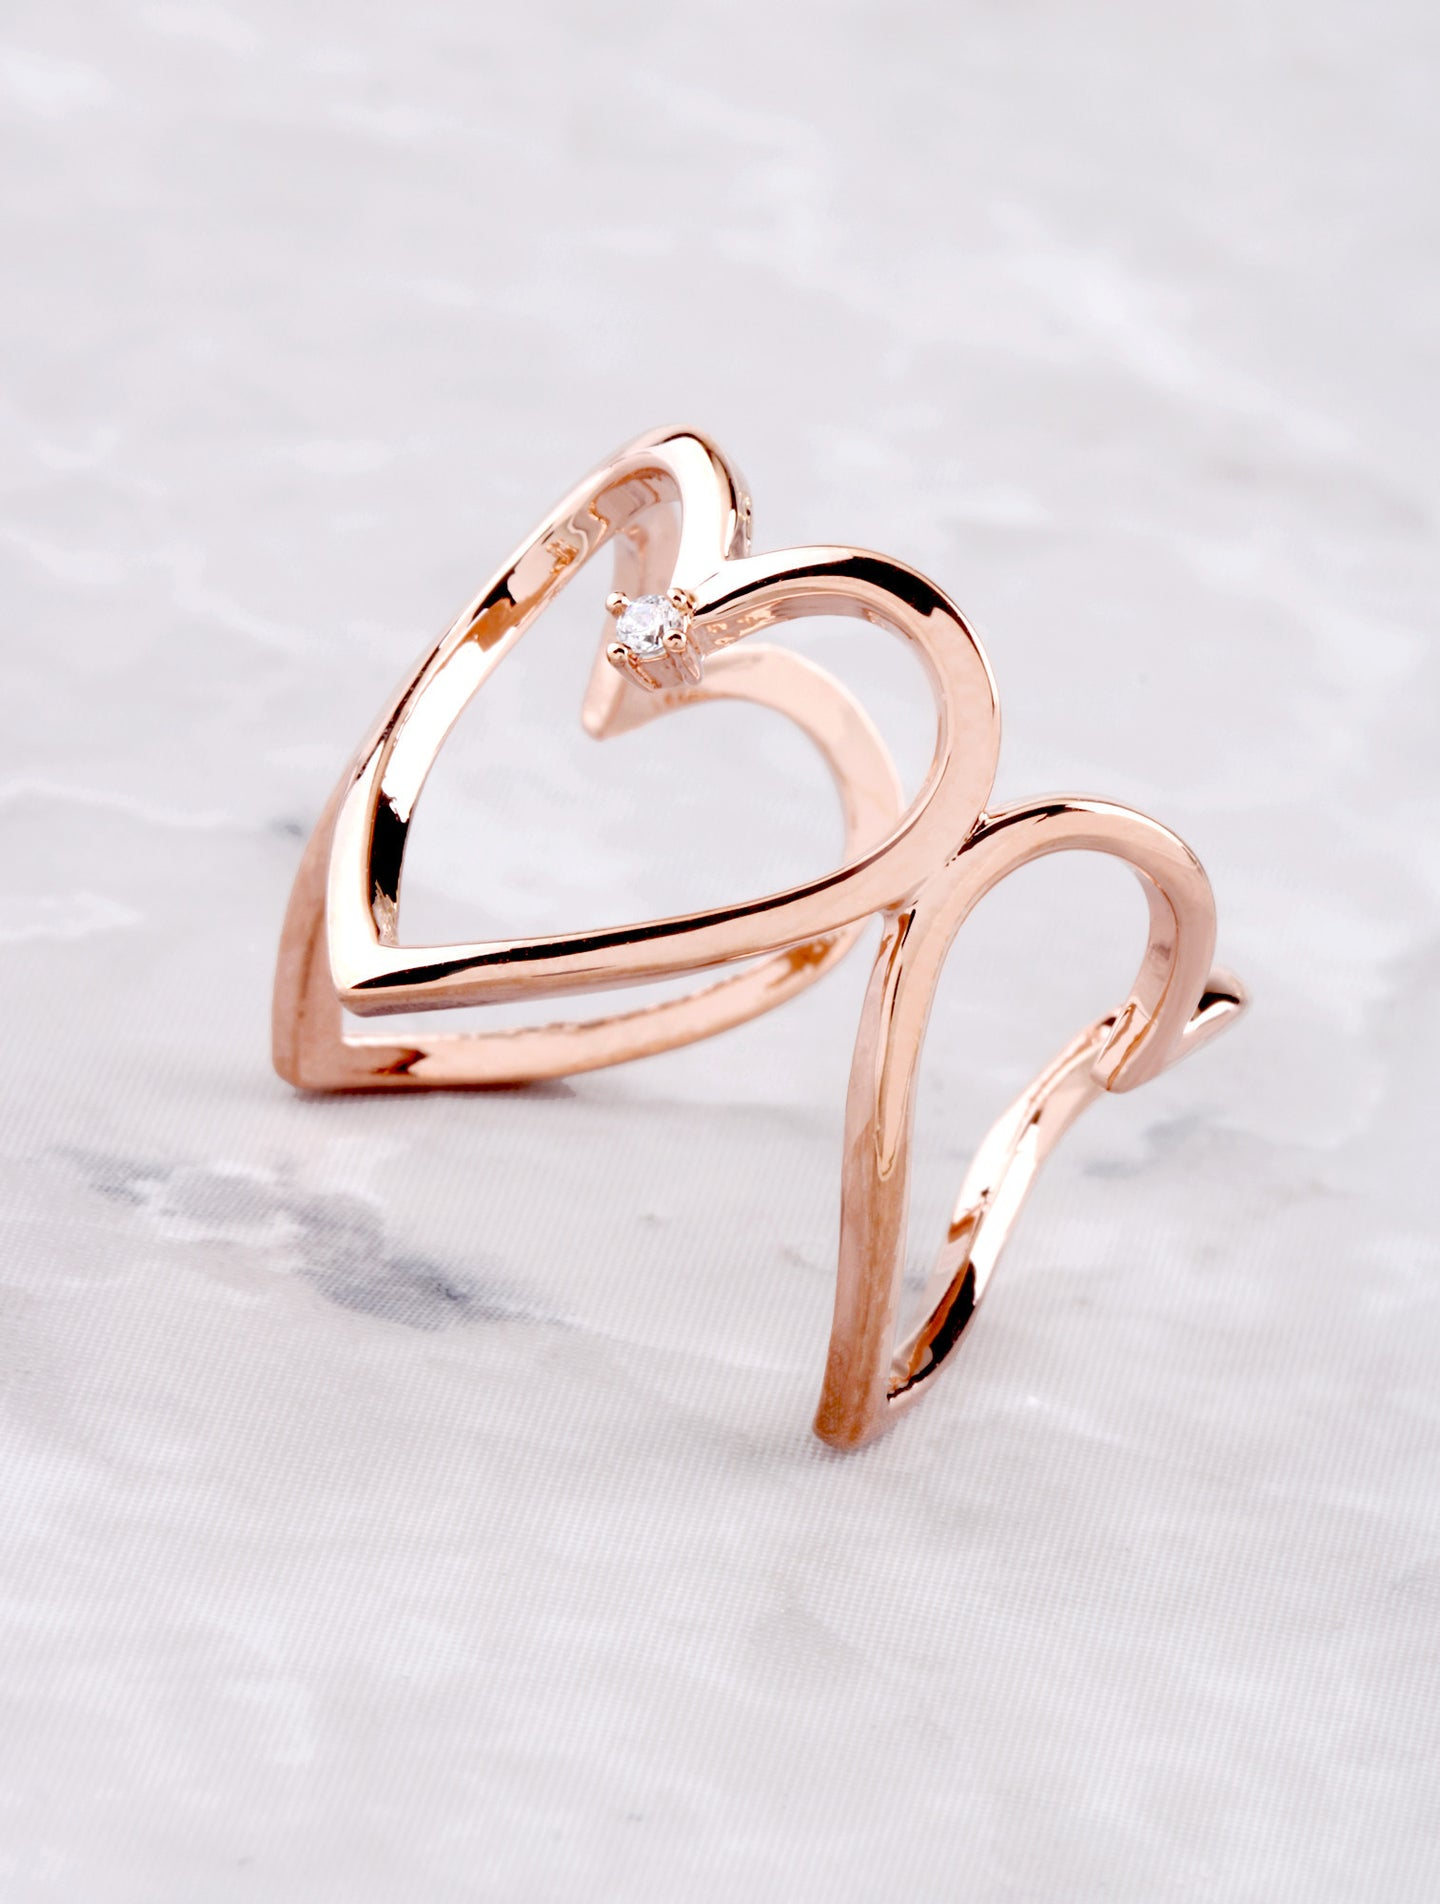 3D Heart Ring Anarchy Street Rosegold